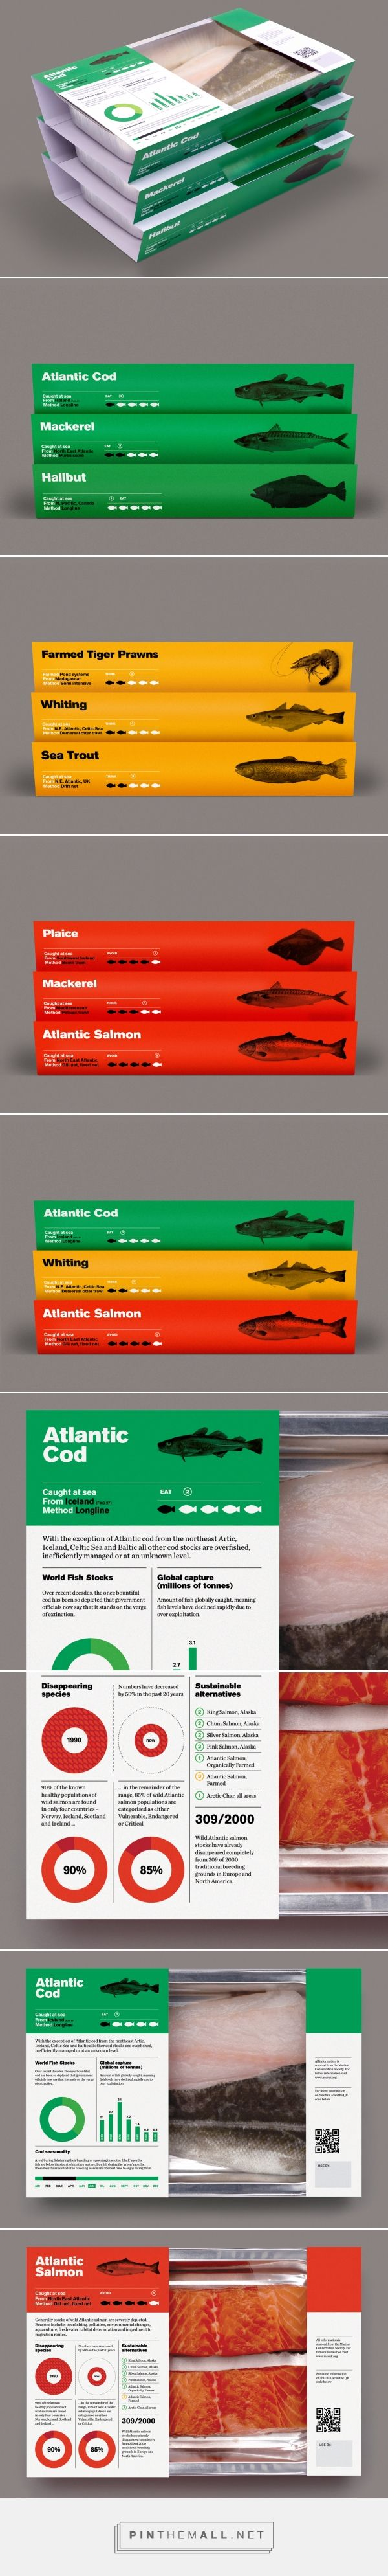 Fish packaging rethink   S-T - created via http://pinthemall.net